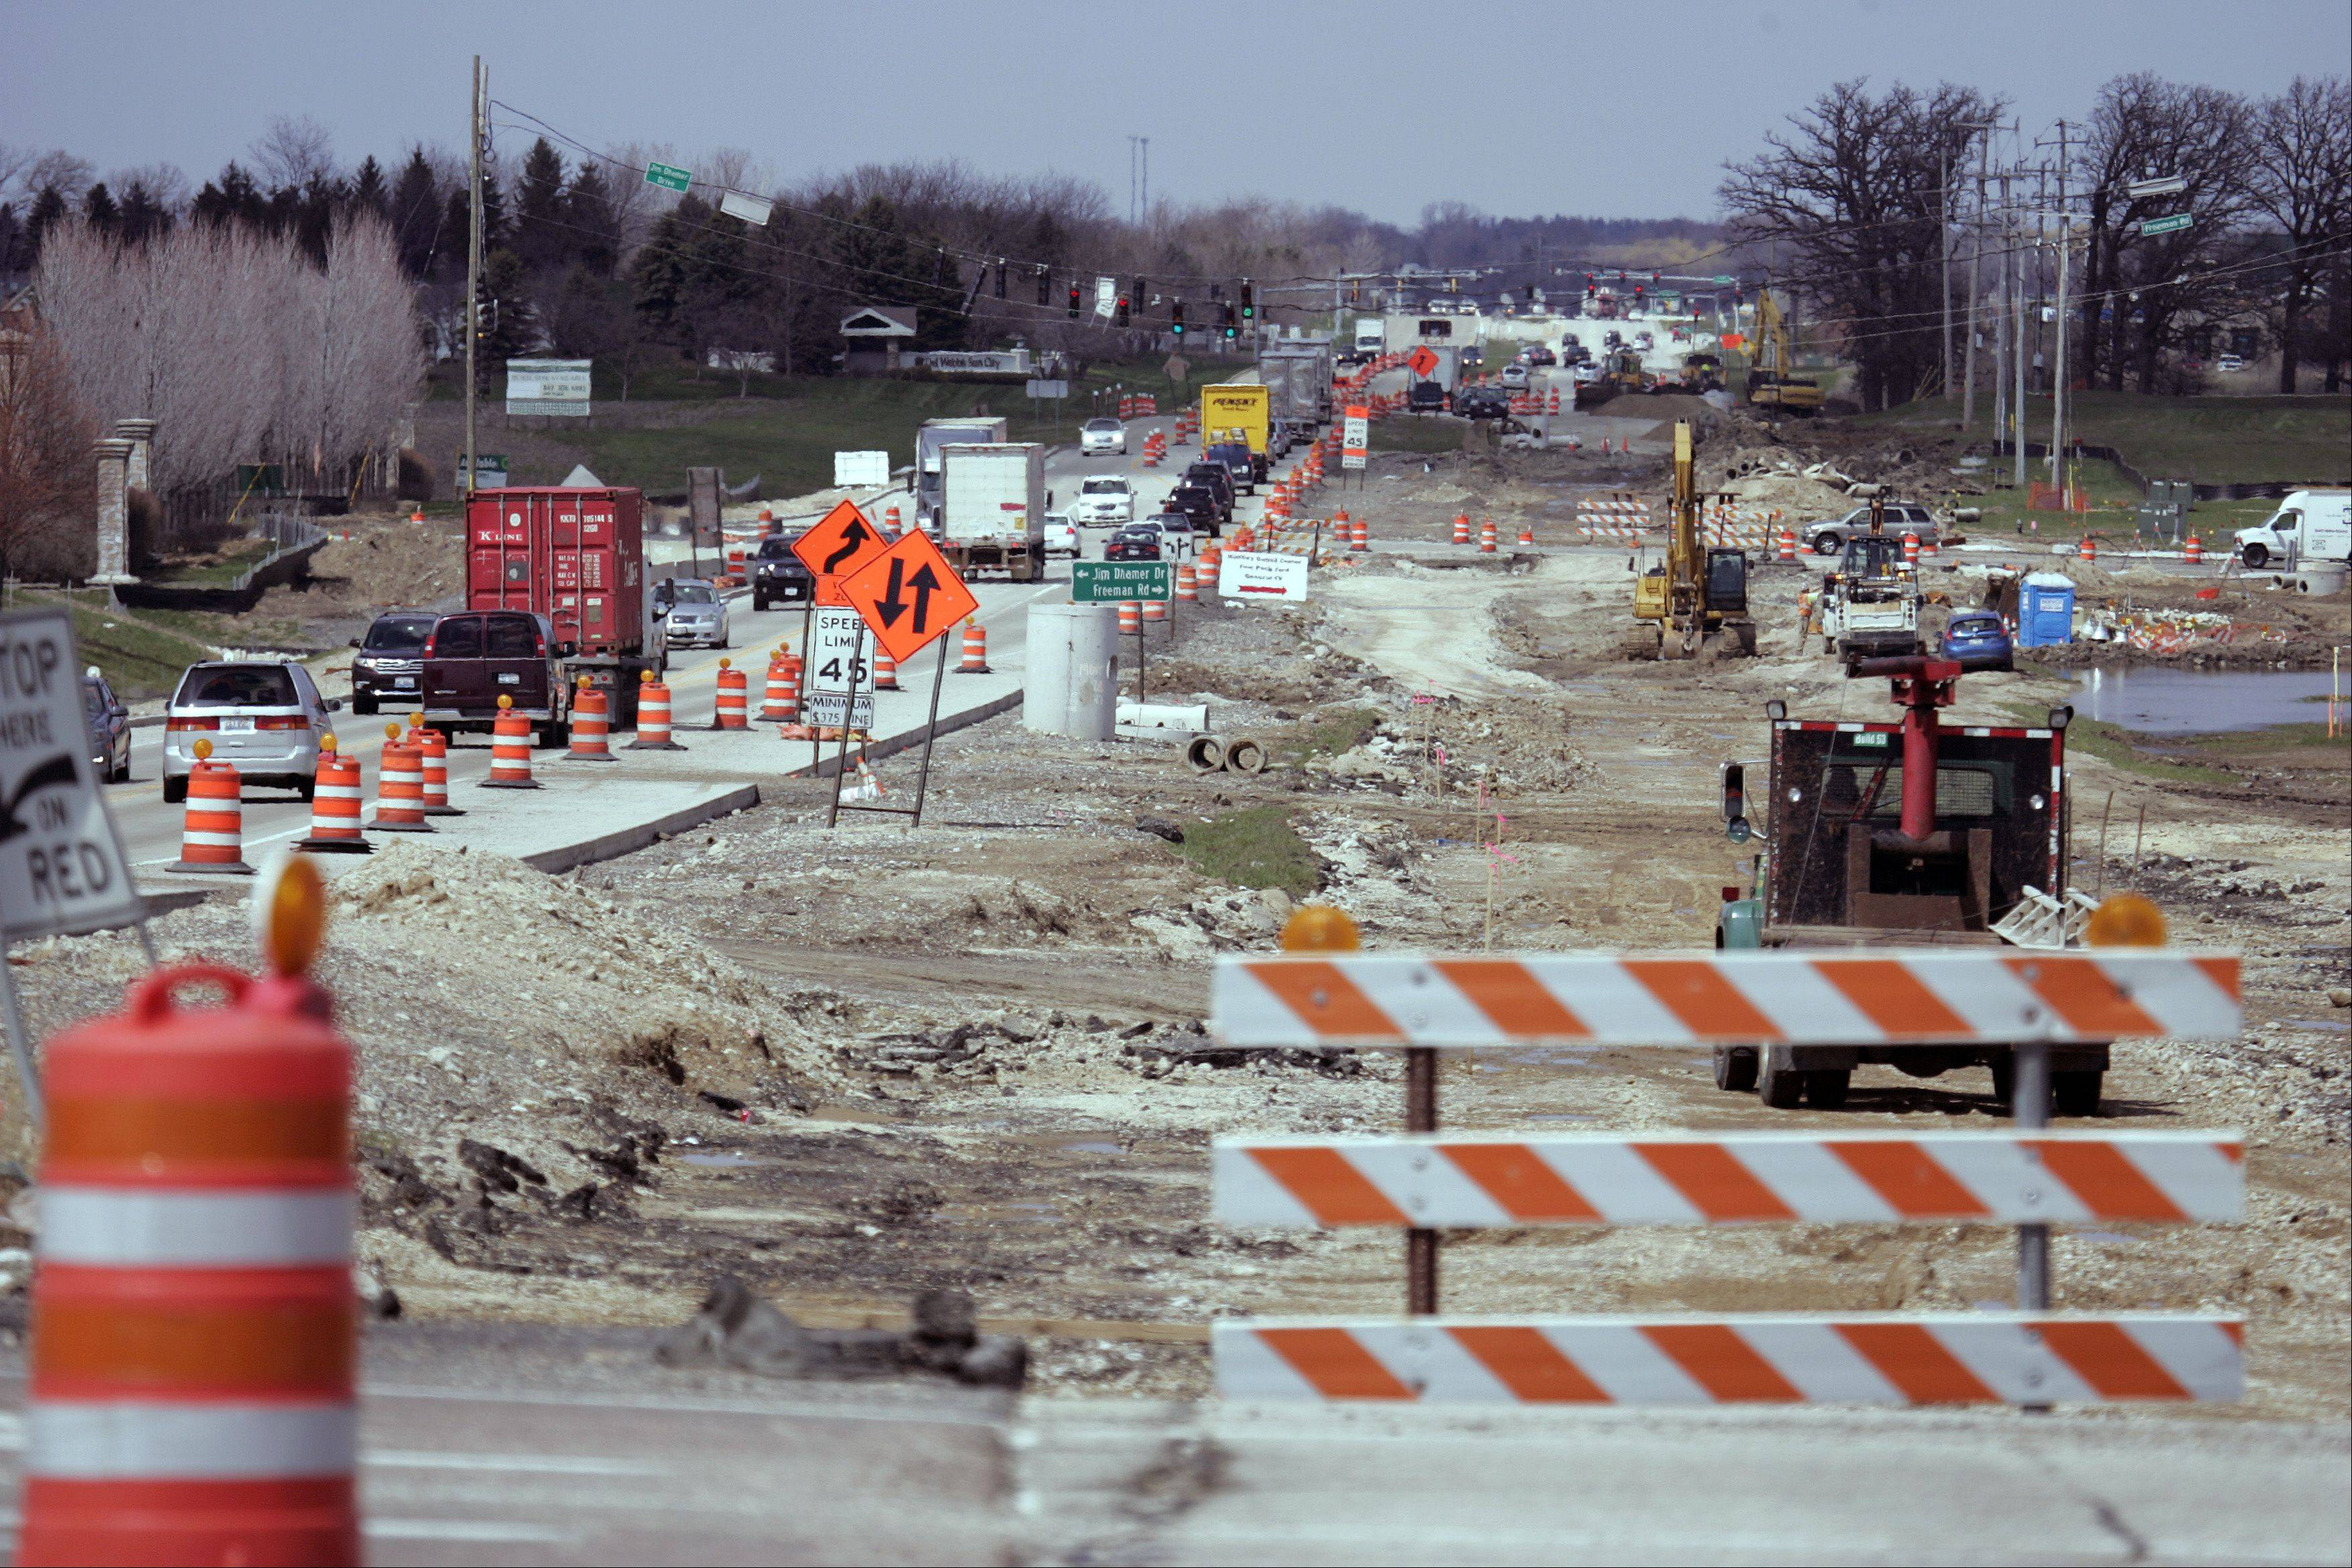 It's that time of the year for roadwork. A northbound view along Route 47 shows the progress of a new full interchange at the Jane Addams Tollway (I-90) in Huntley.